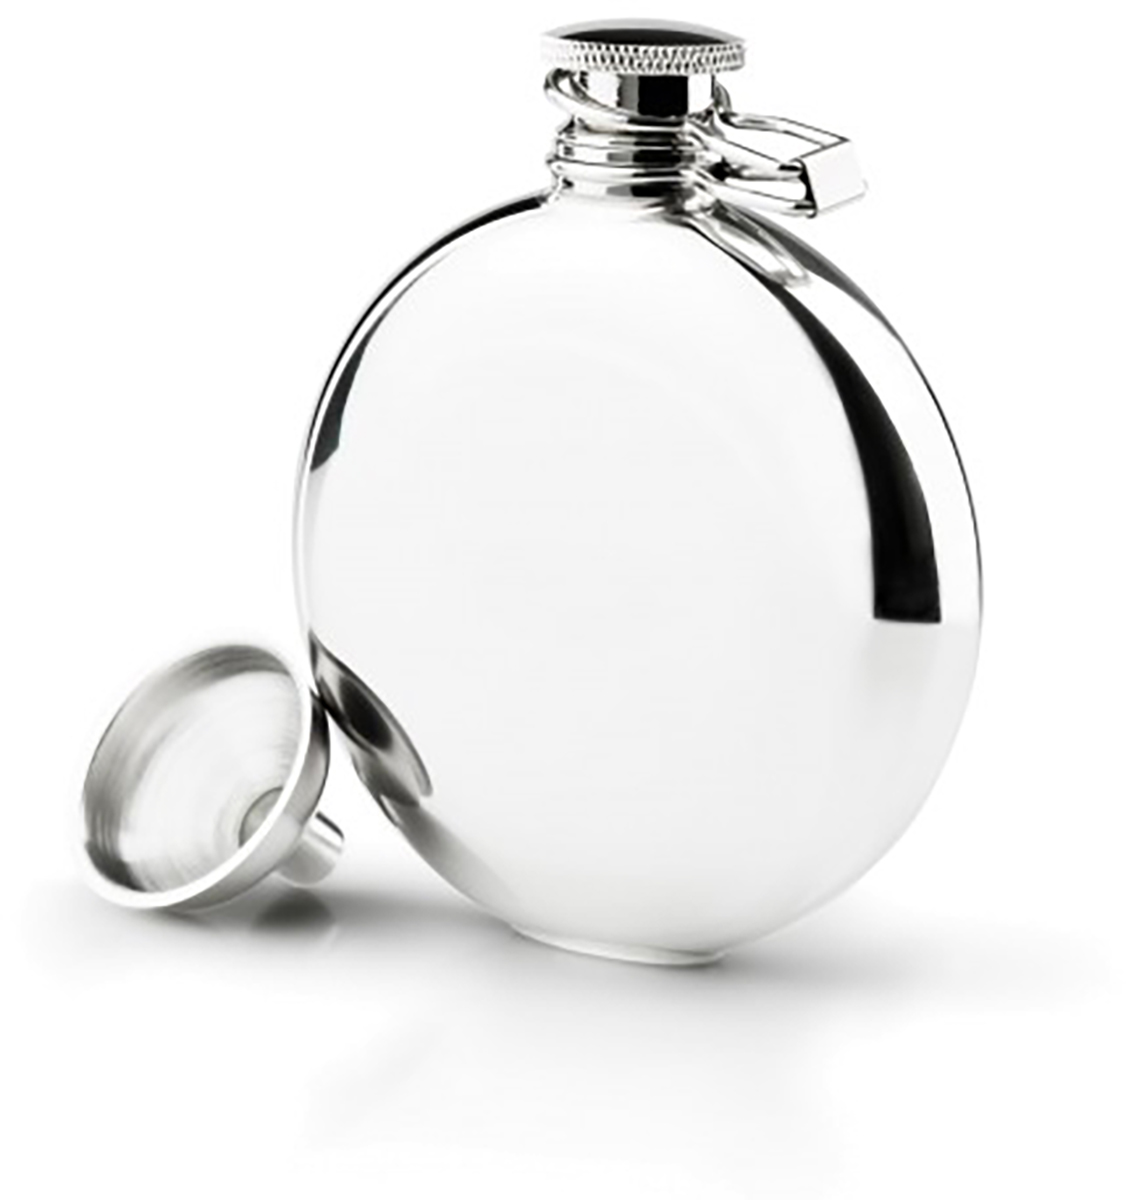 GSI Outdoors Glacier Stainless 5 fl oz Classic Flask | Bottles